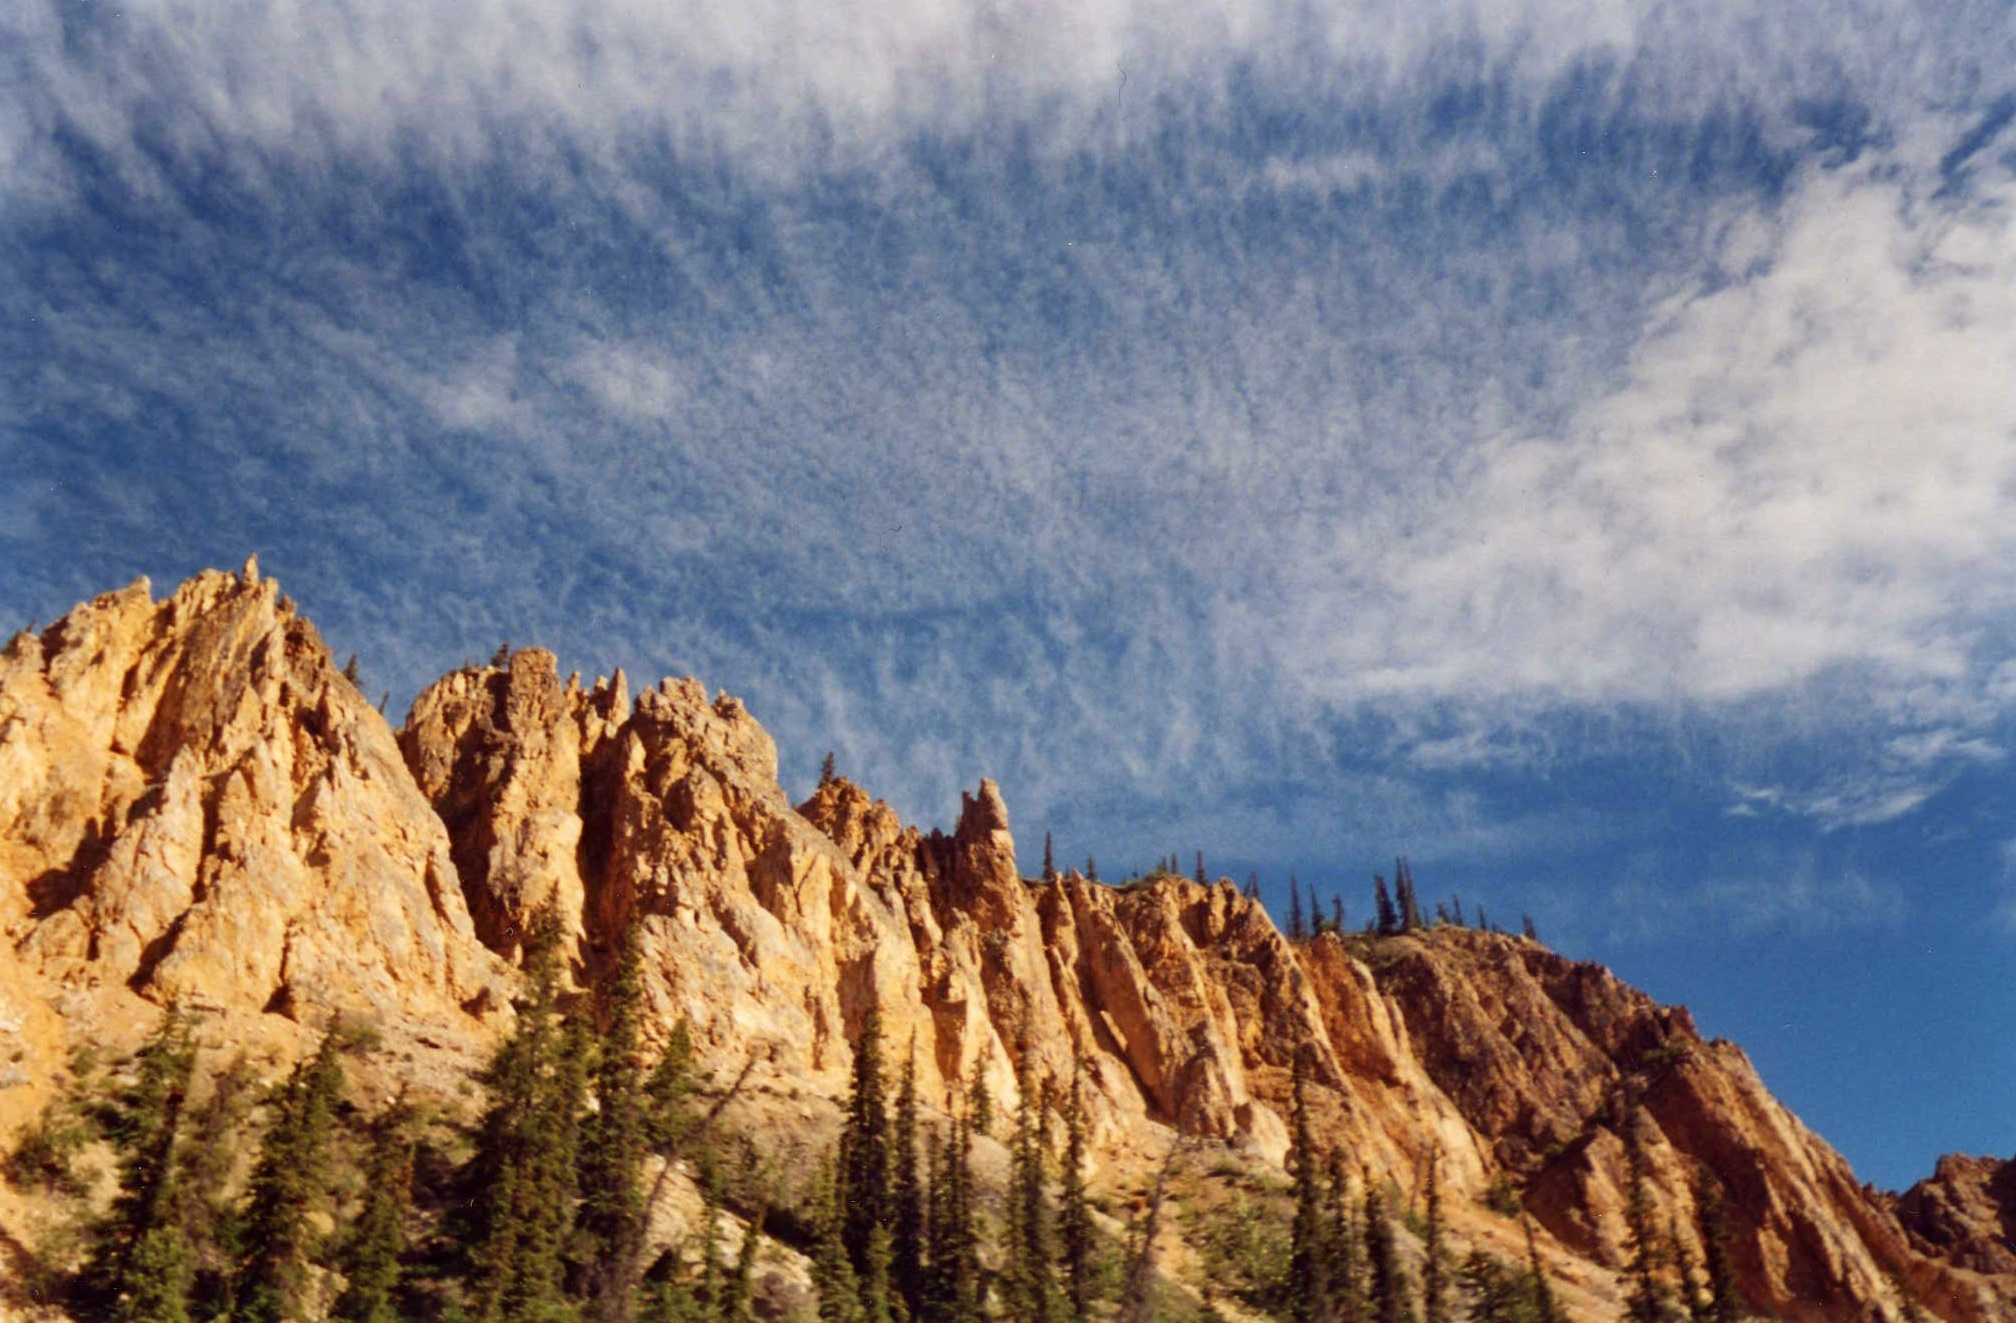 The sandstone formations of Ramparts Canyon pierce the blue sky with wispy clouds.